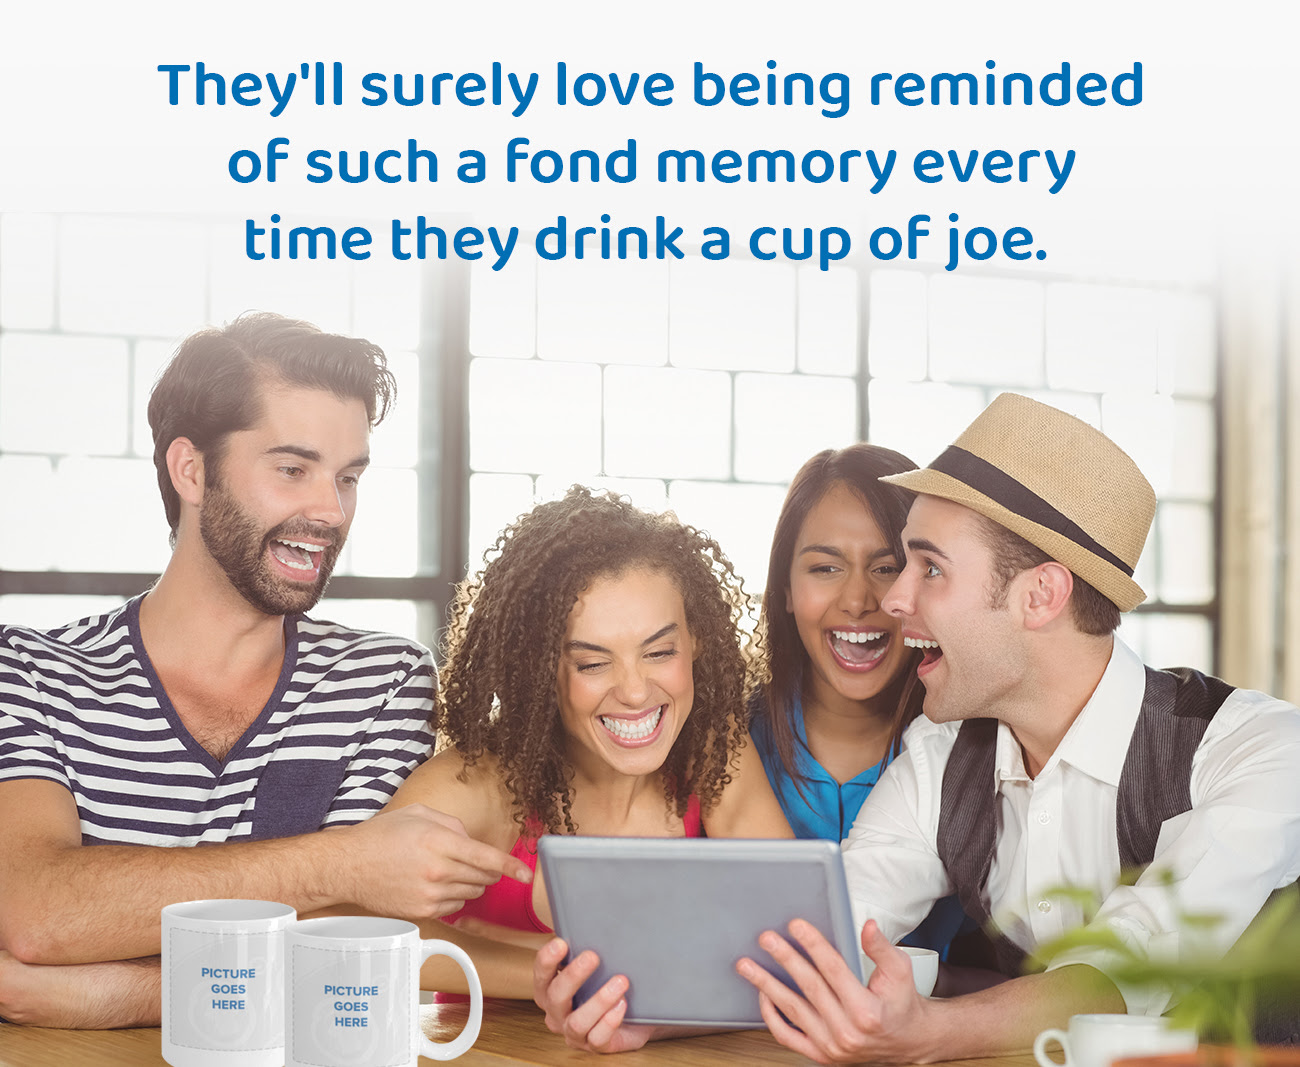 They'll surely love being reminded of such a fond memory every time they drink a cup of joe.